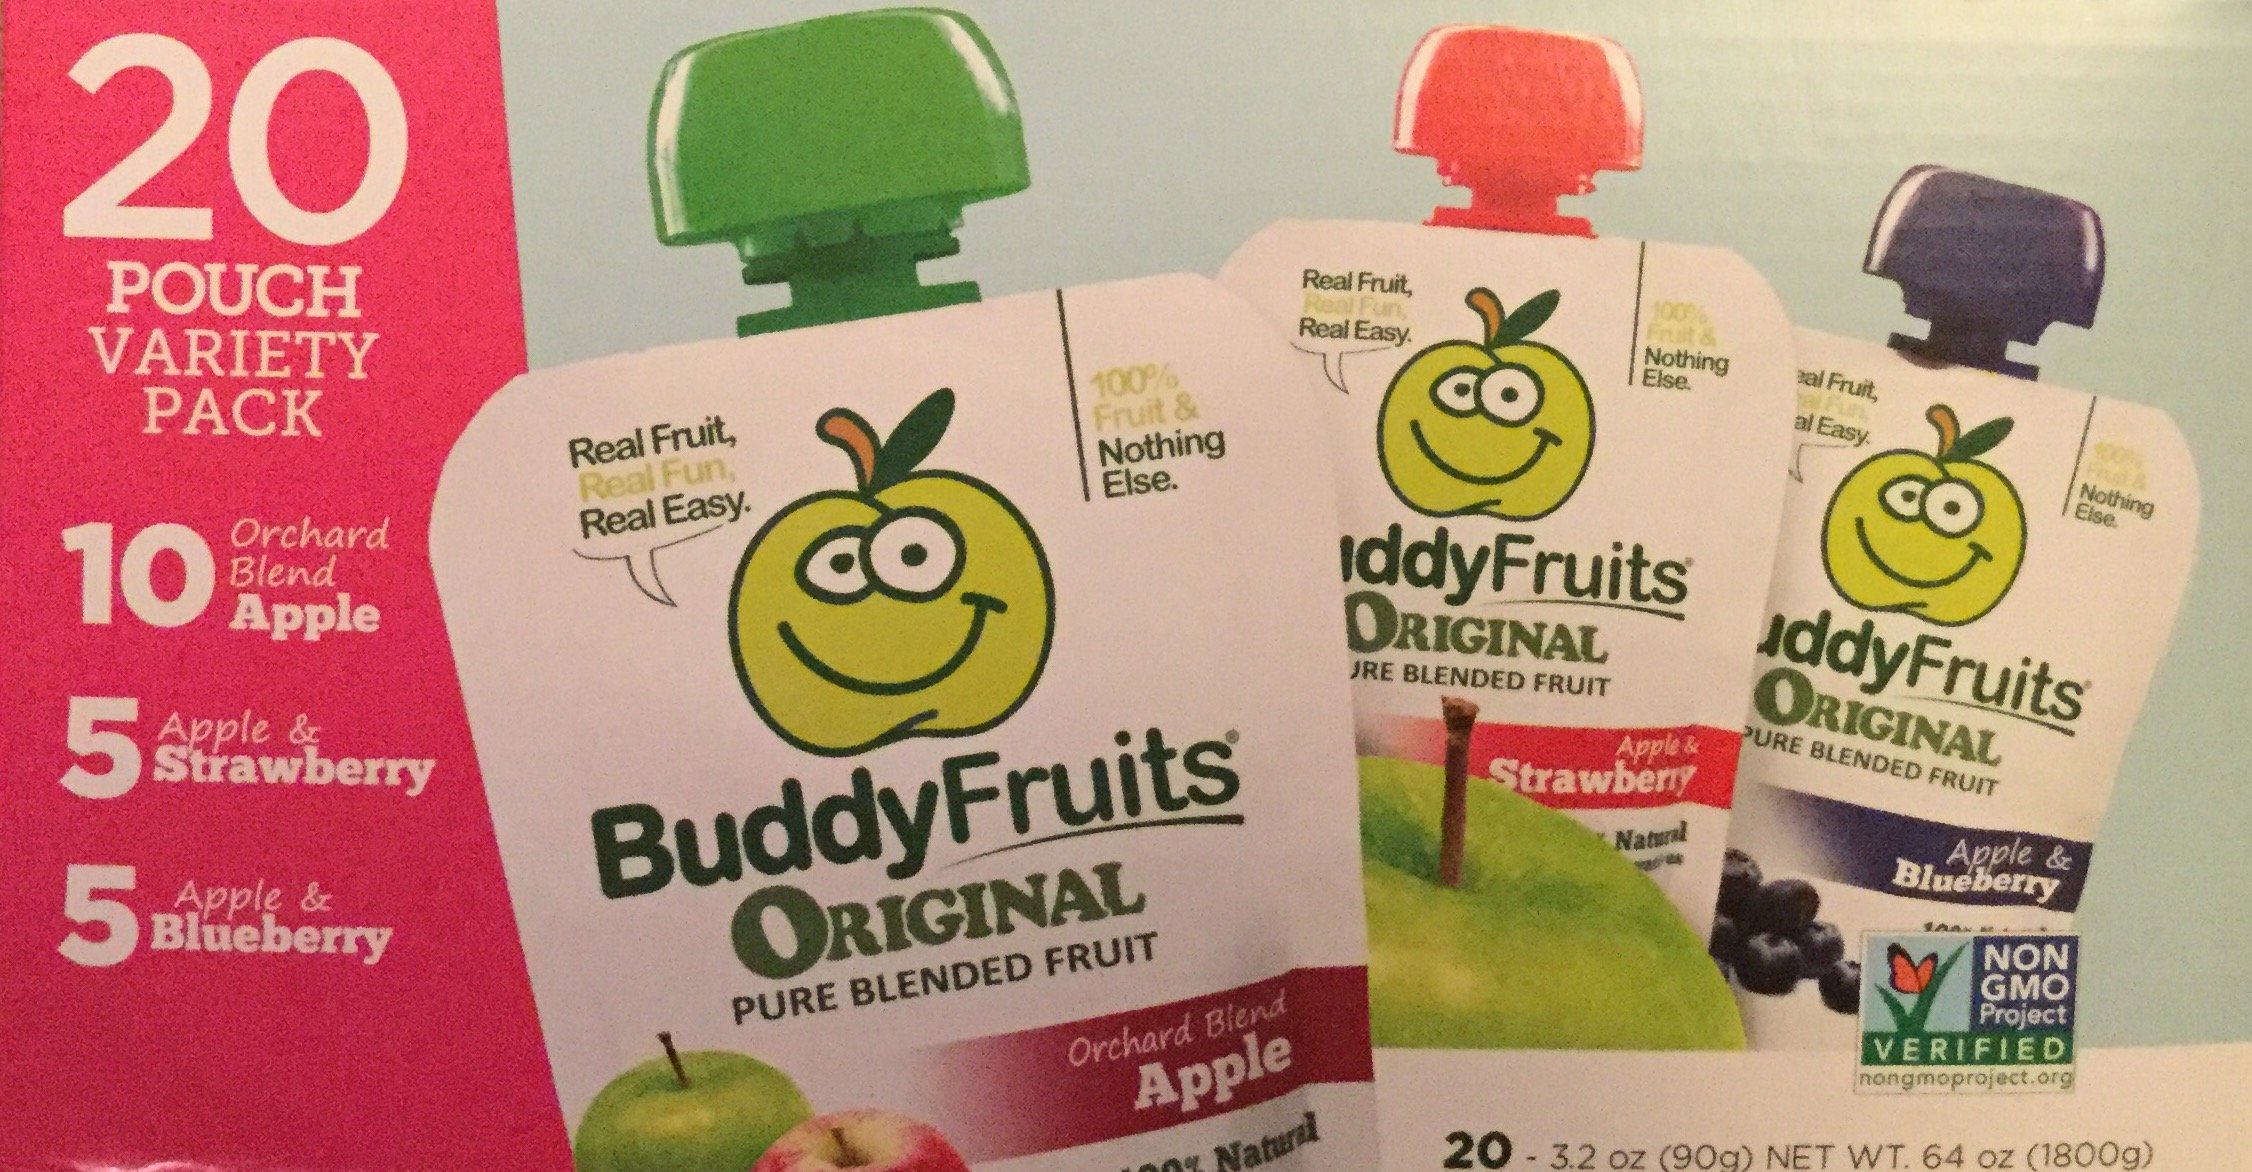 Buddy Fruits Original Pure Blended Fruit- 20 3.2 Ounce Pouch Variety Pack, 10 Orchard Blend Apple, 5 Apple & Strawberry, 5 Apple & Blueberry, NON GMO VERIFIED